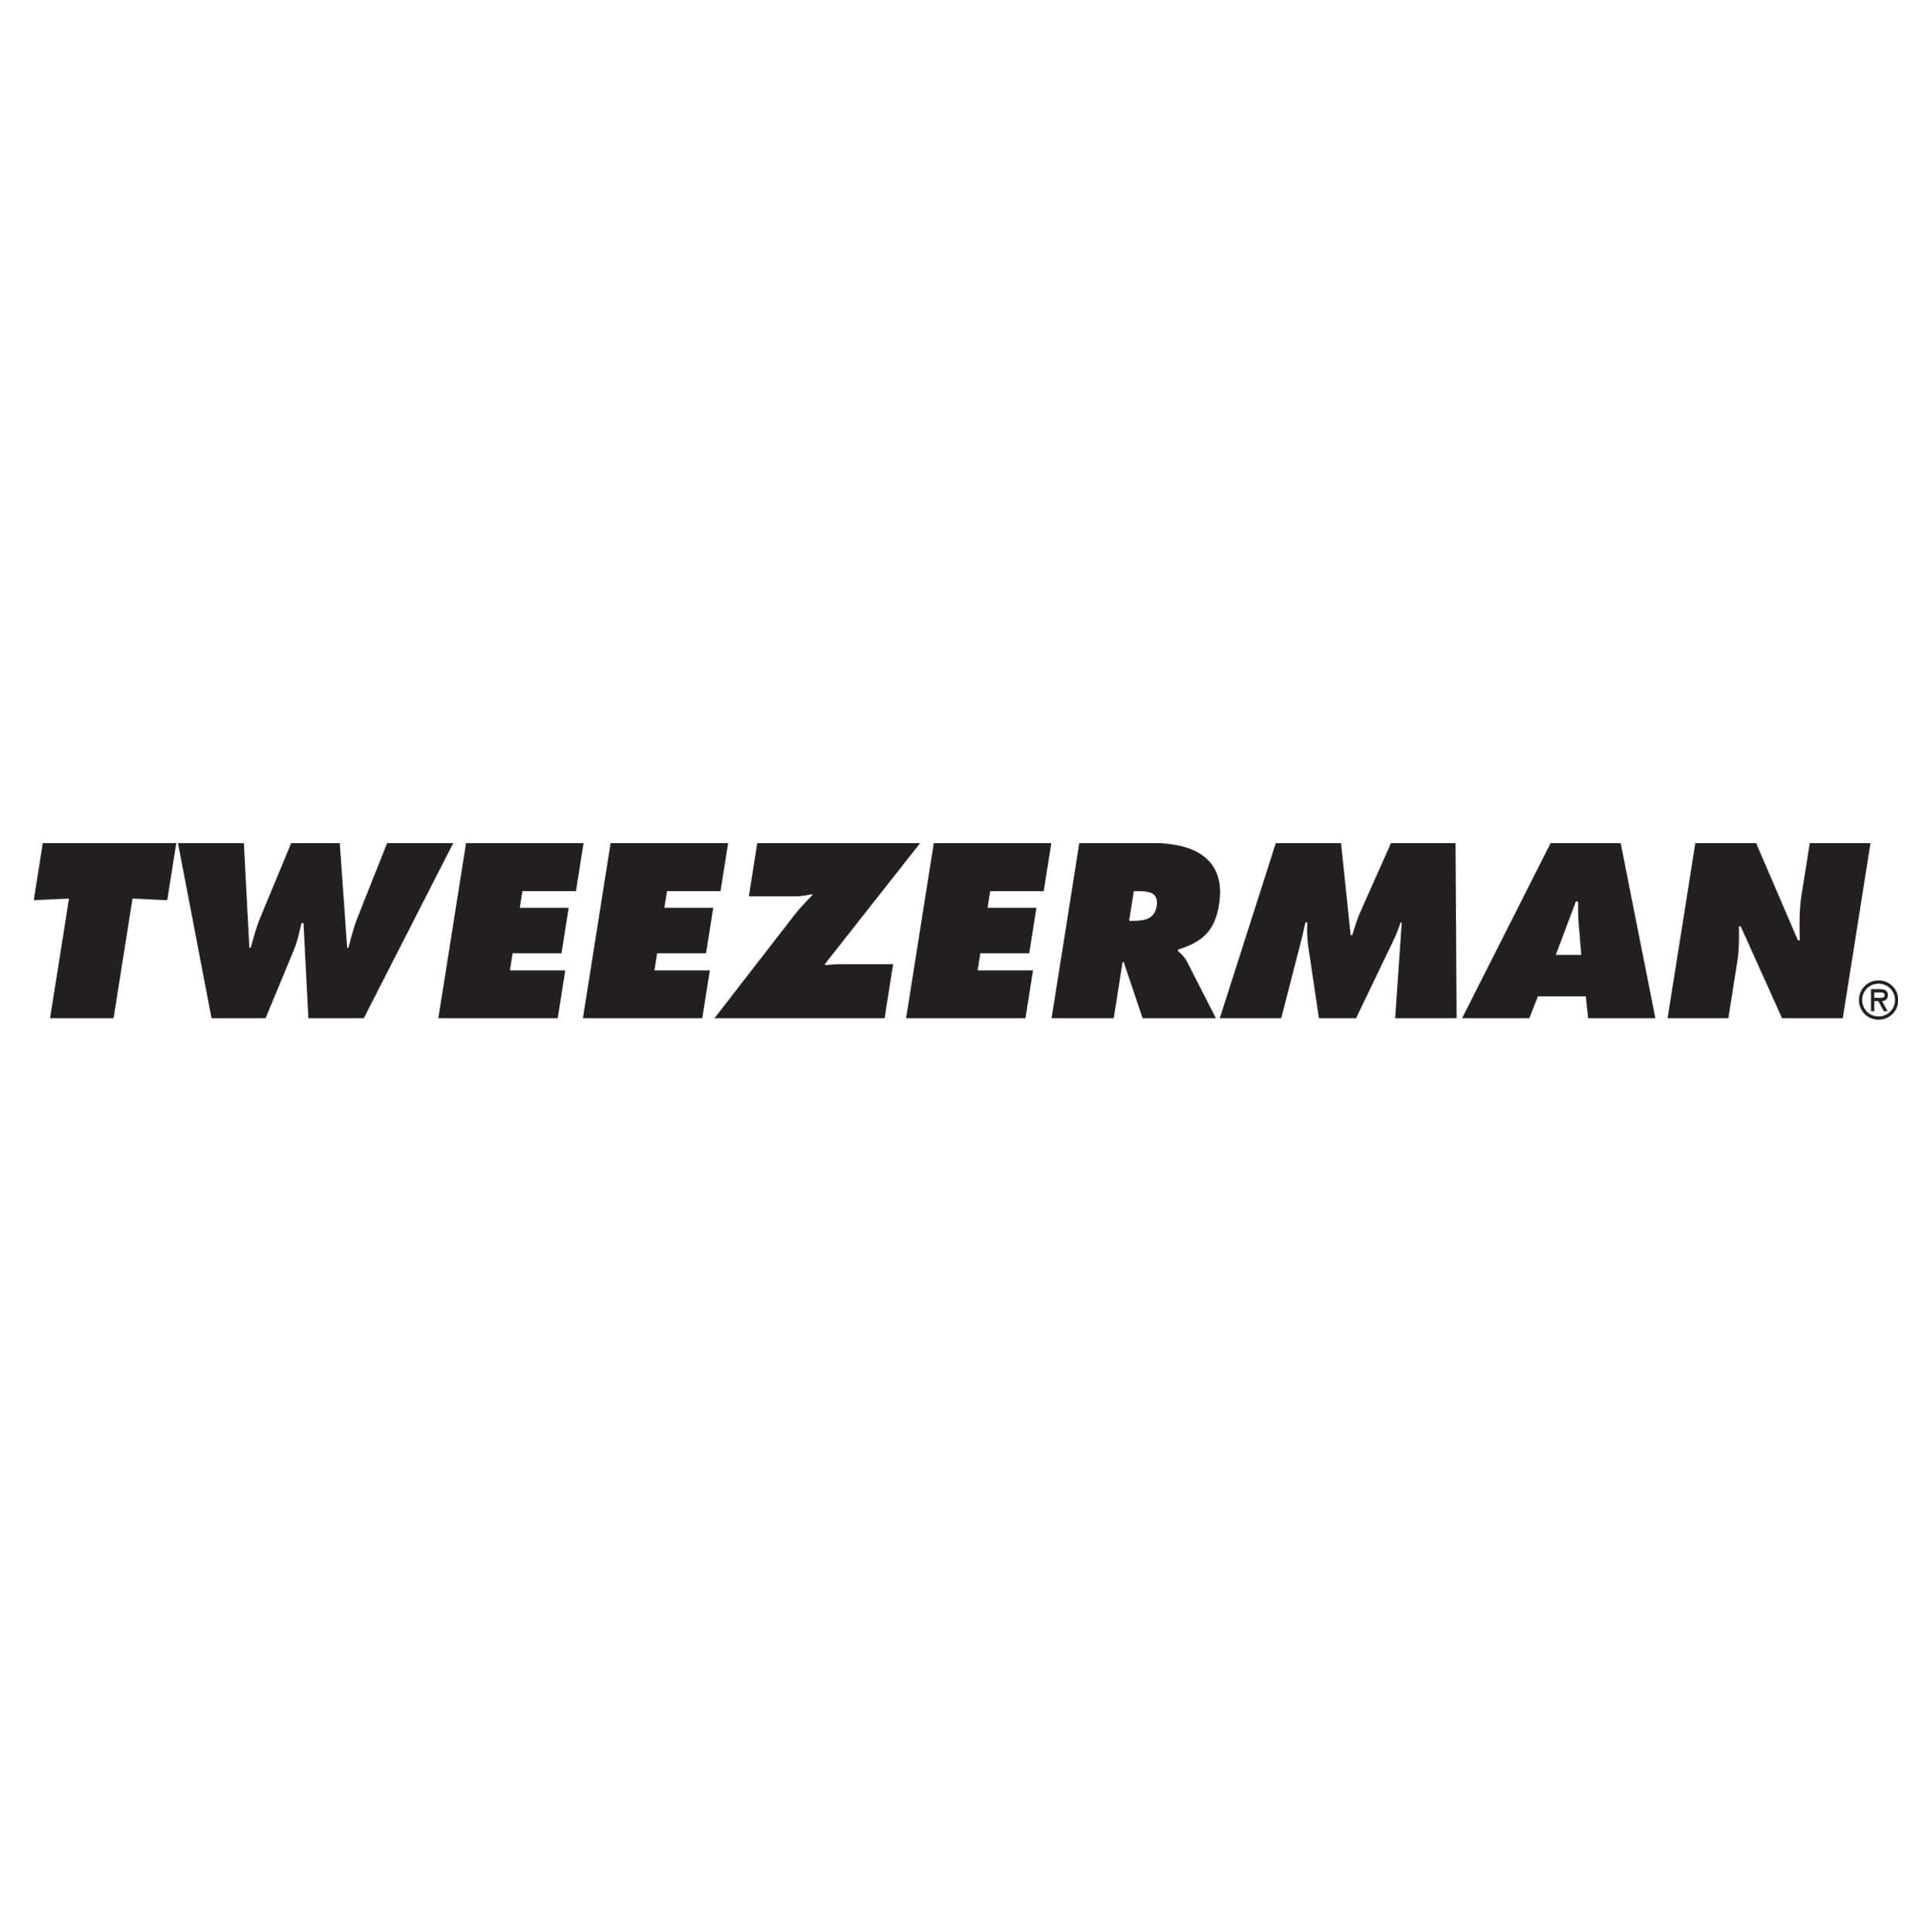 Deluxe Shaving Brush standing tall on white background